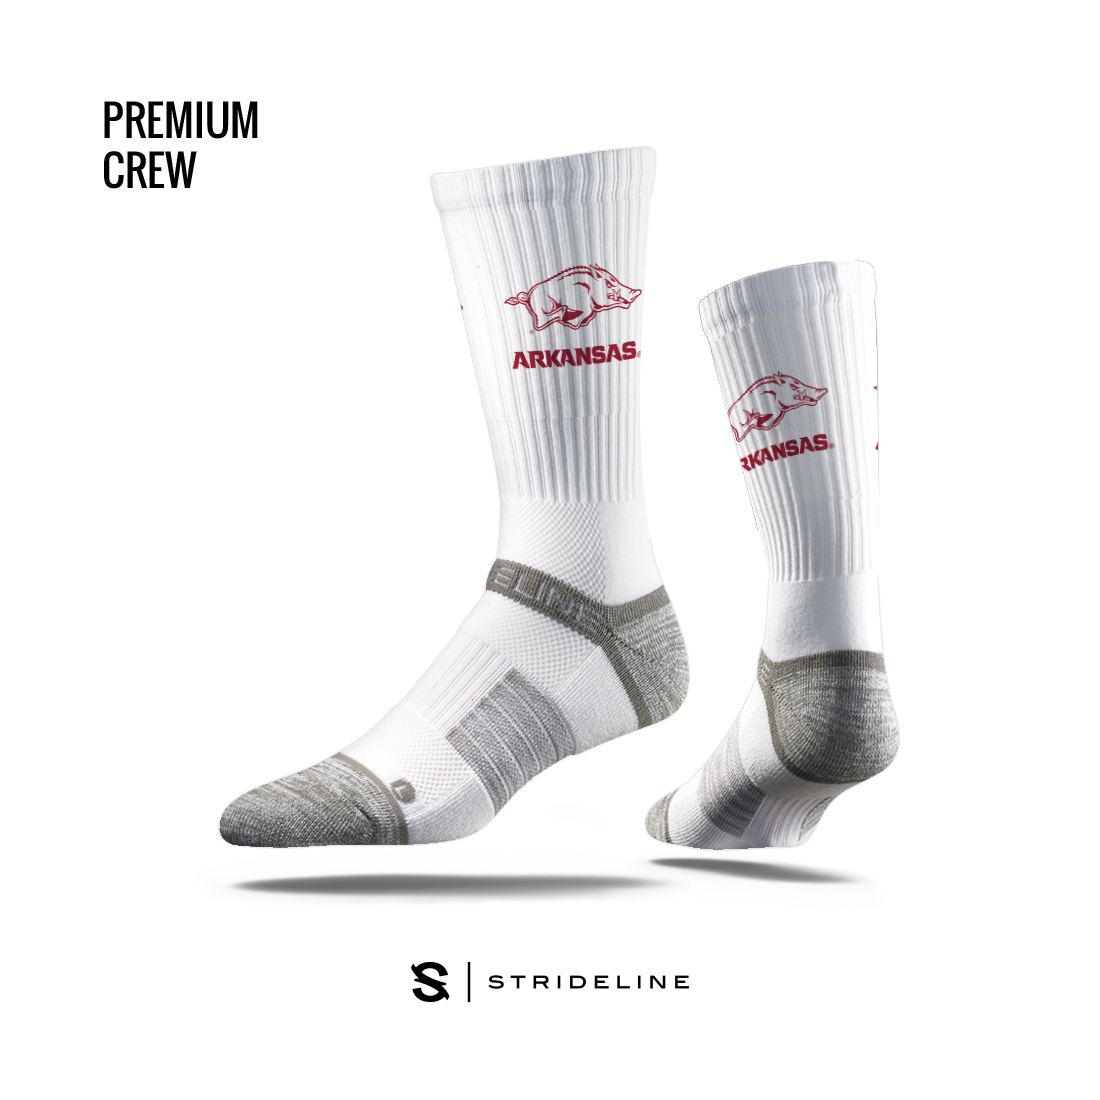 Arkansas Crew Premium Sock